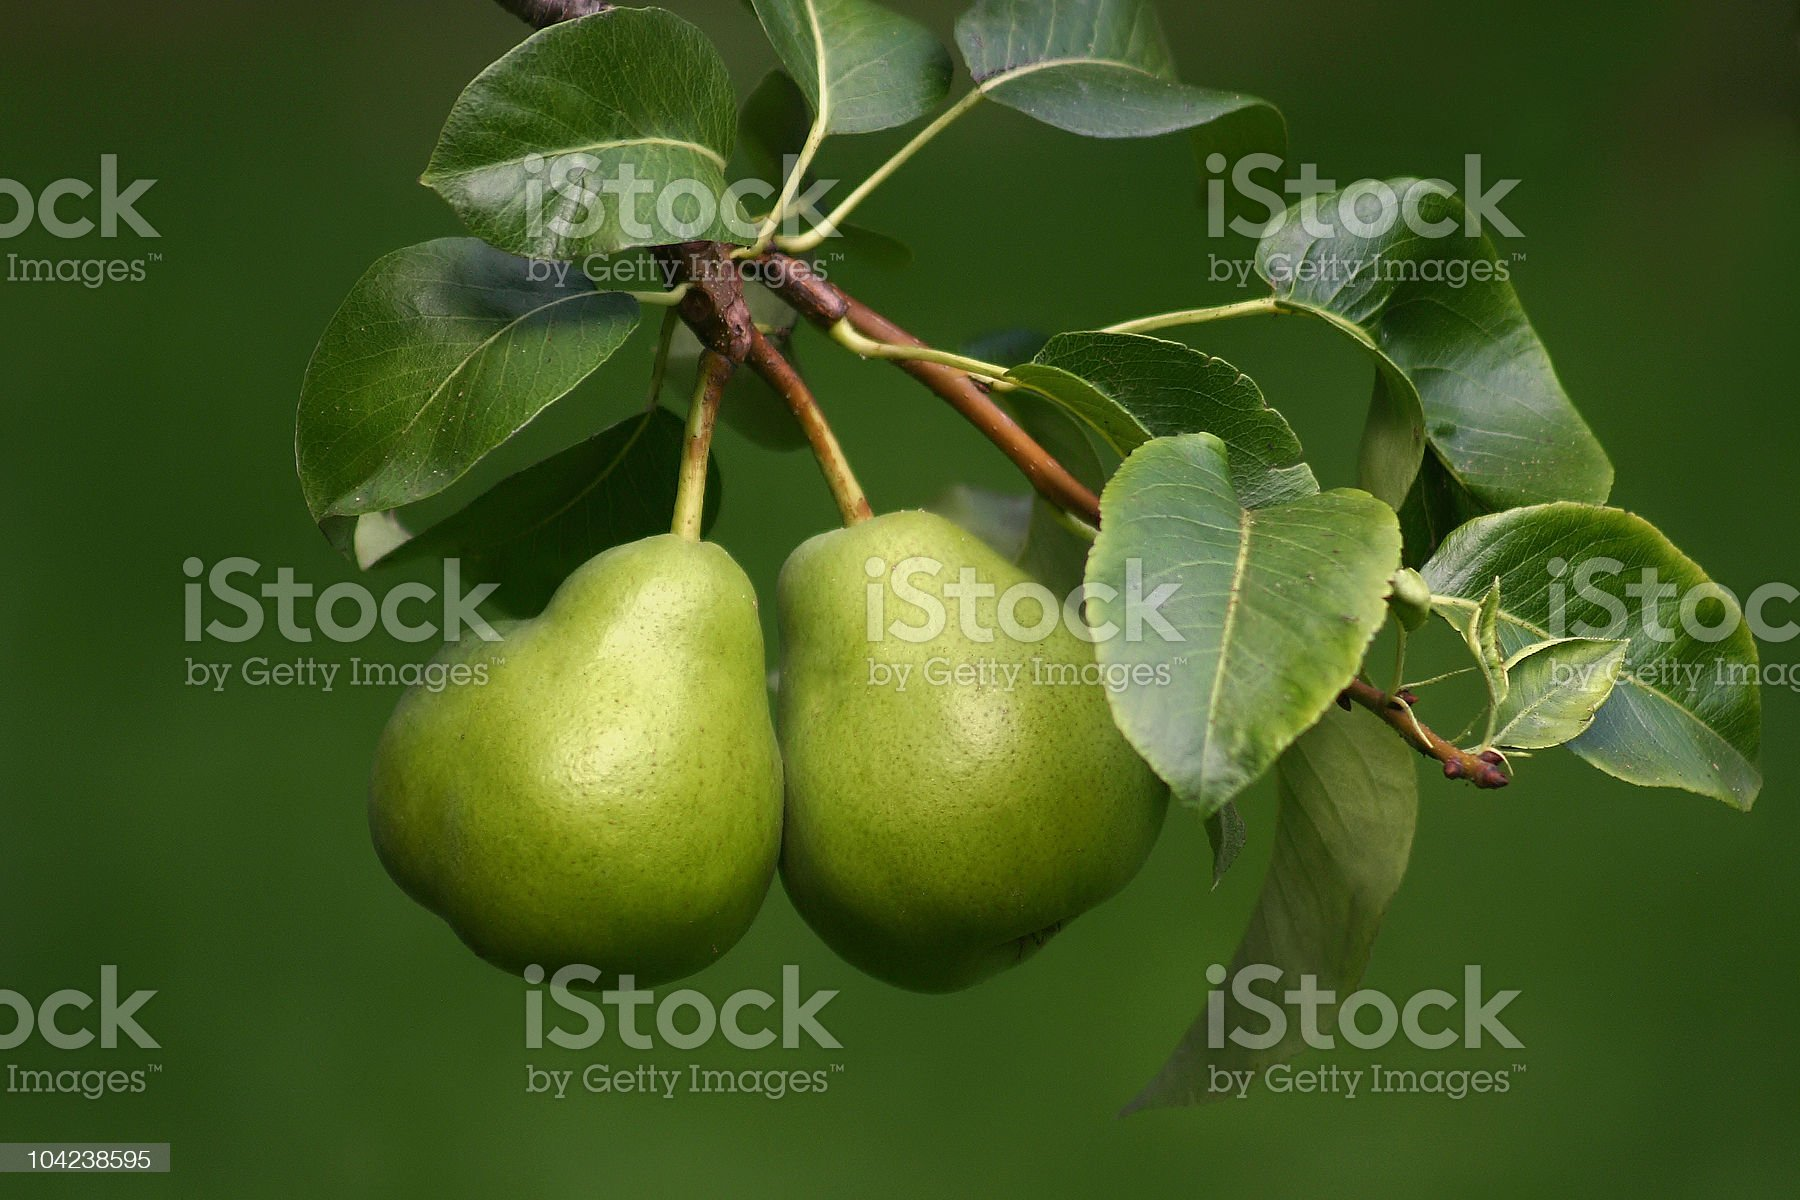 Couple of Green Pears royalty-free stock photo